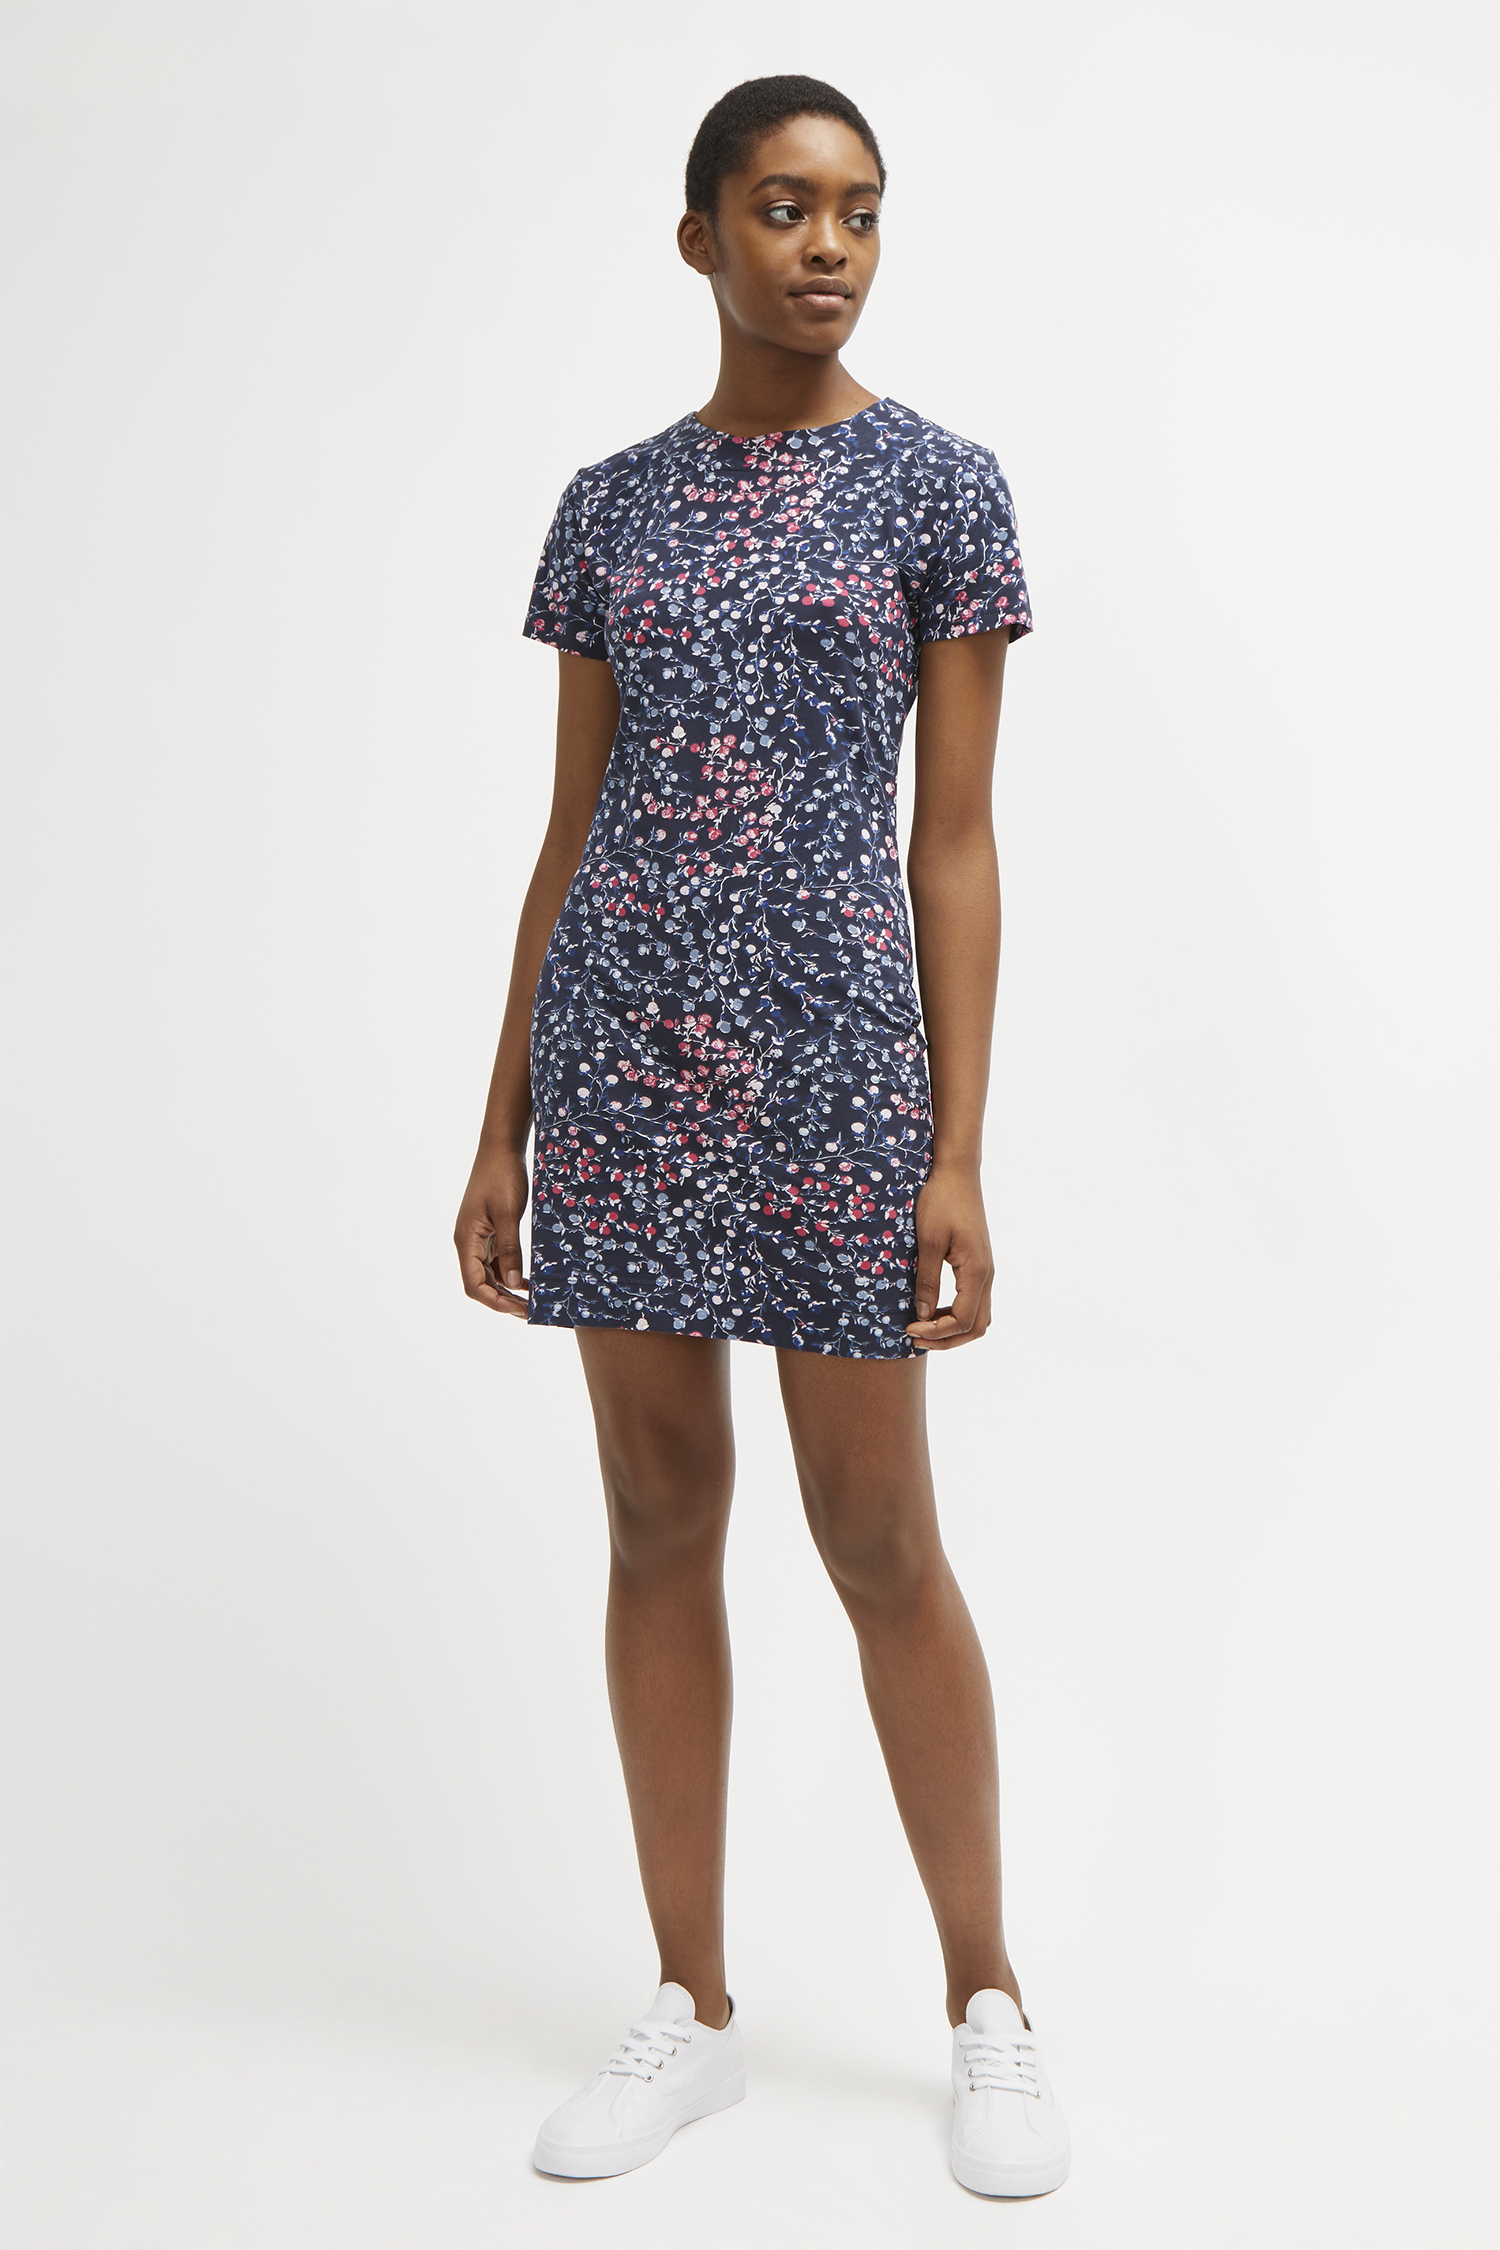 Dresses Connection SaleFrench Women's Dresses Women's SaleFrench Dresses Women's Connection Connection SaleFrench Women's SaleFrench Dresses nNP80wkOX